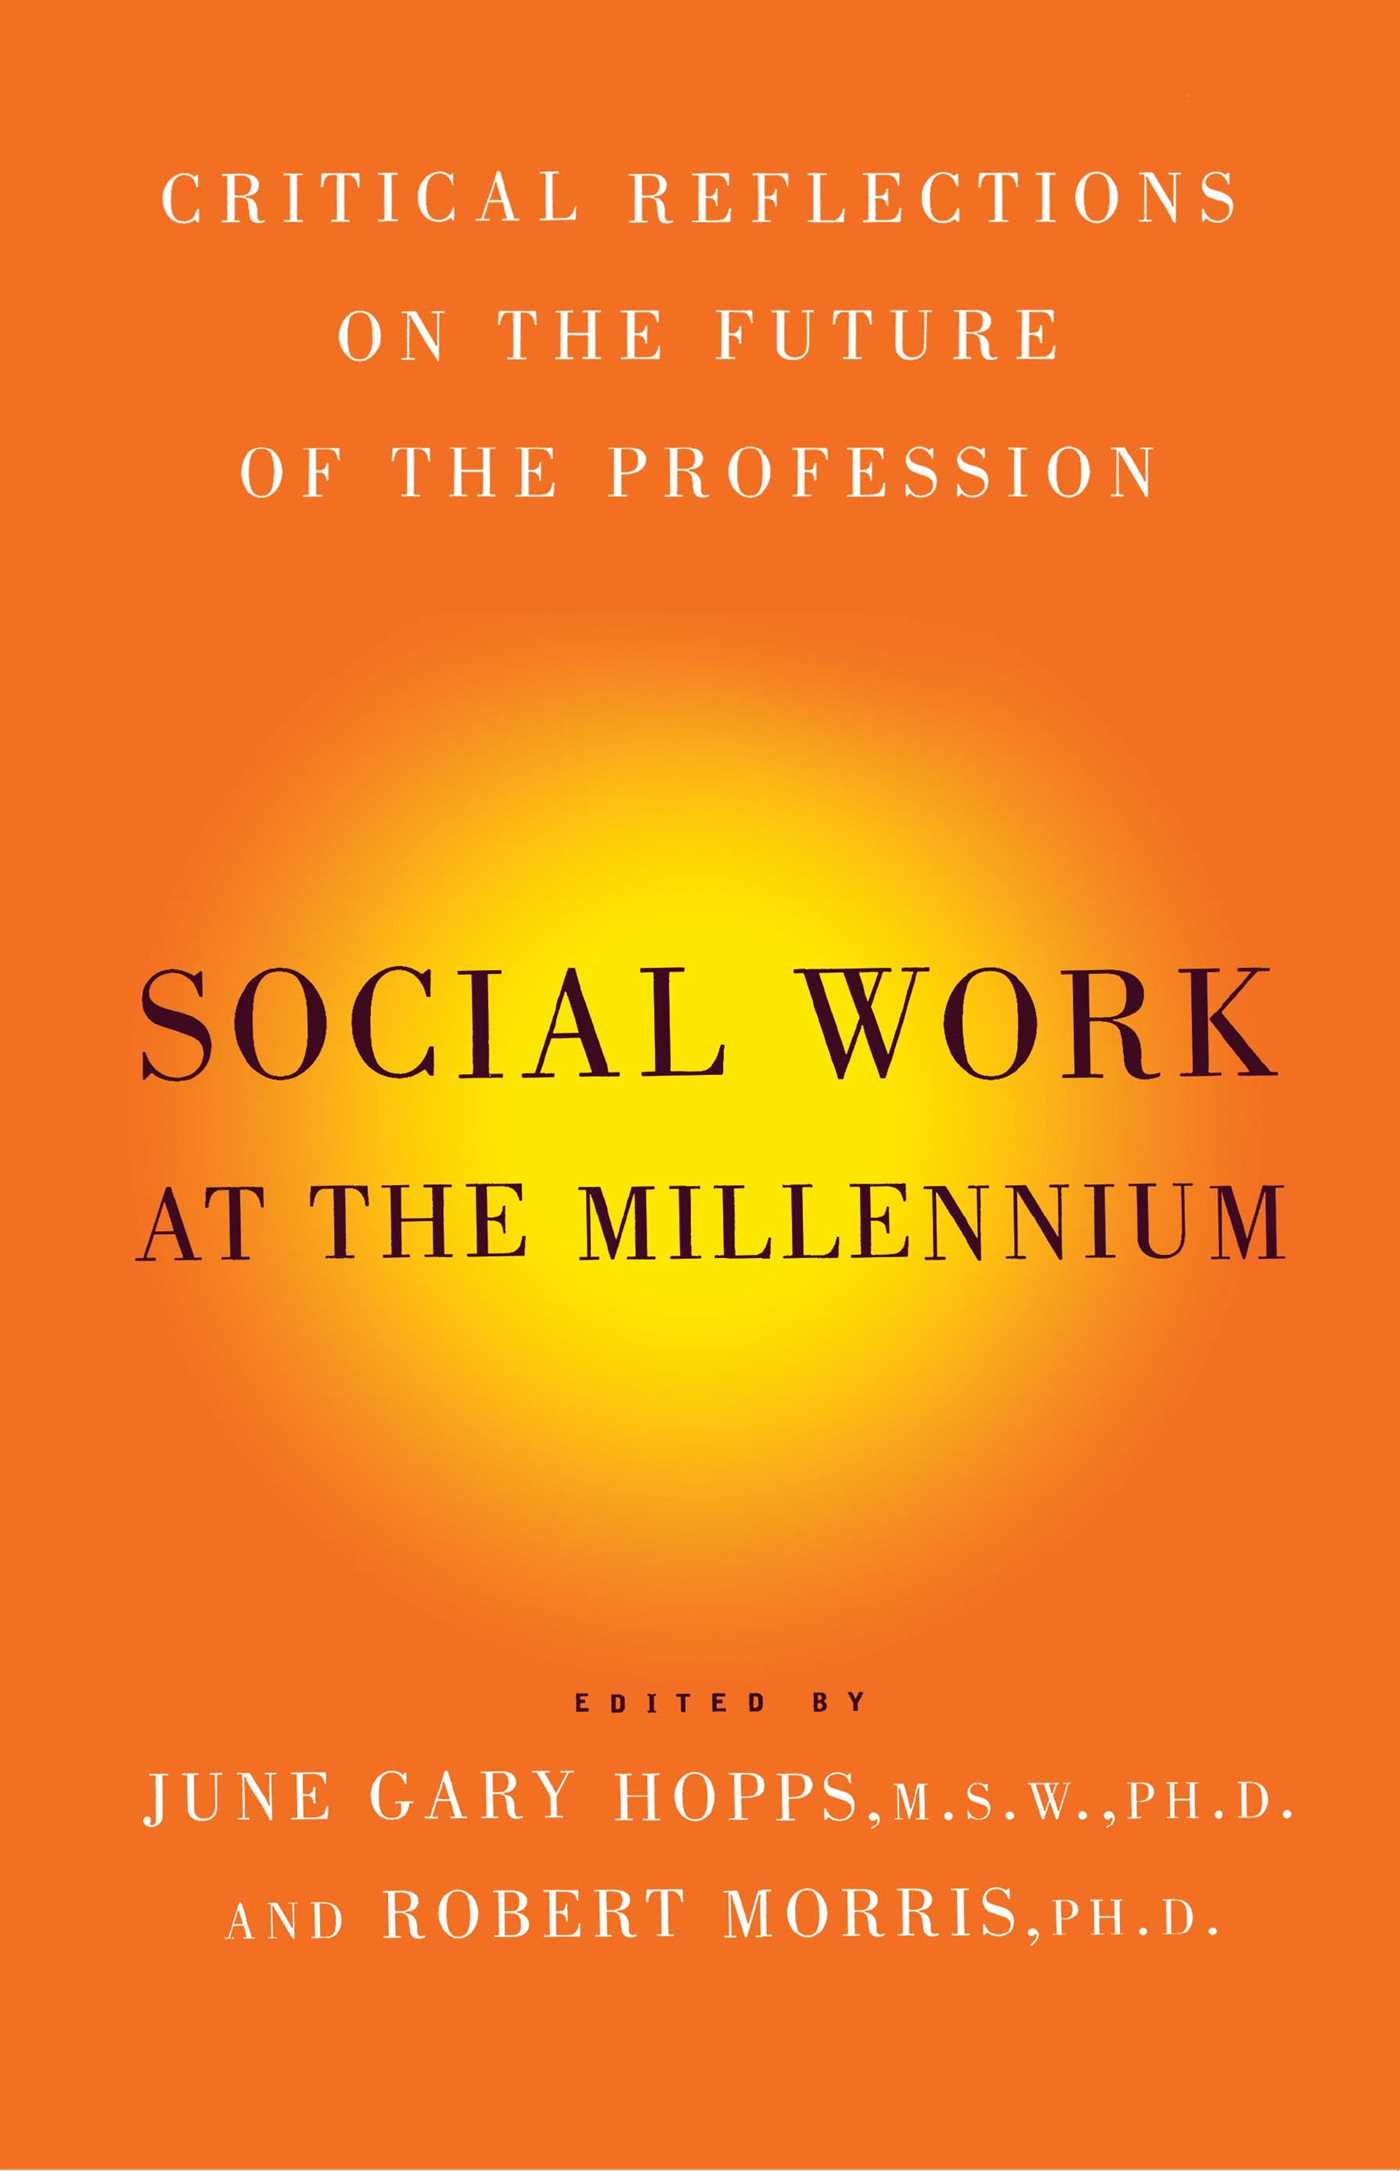 Social work at the millennium 9781416576921 hr